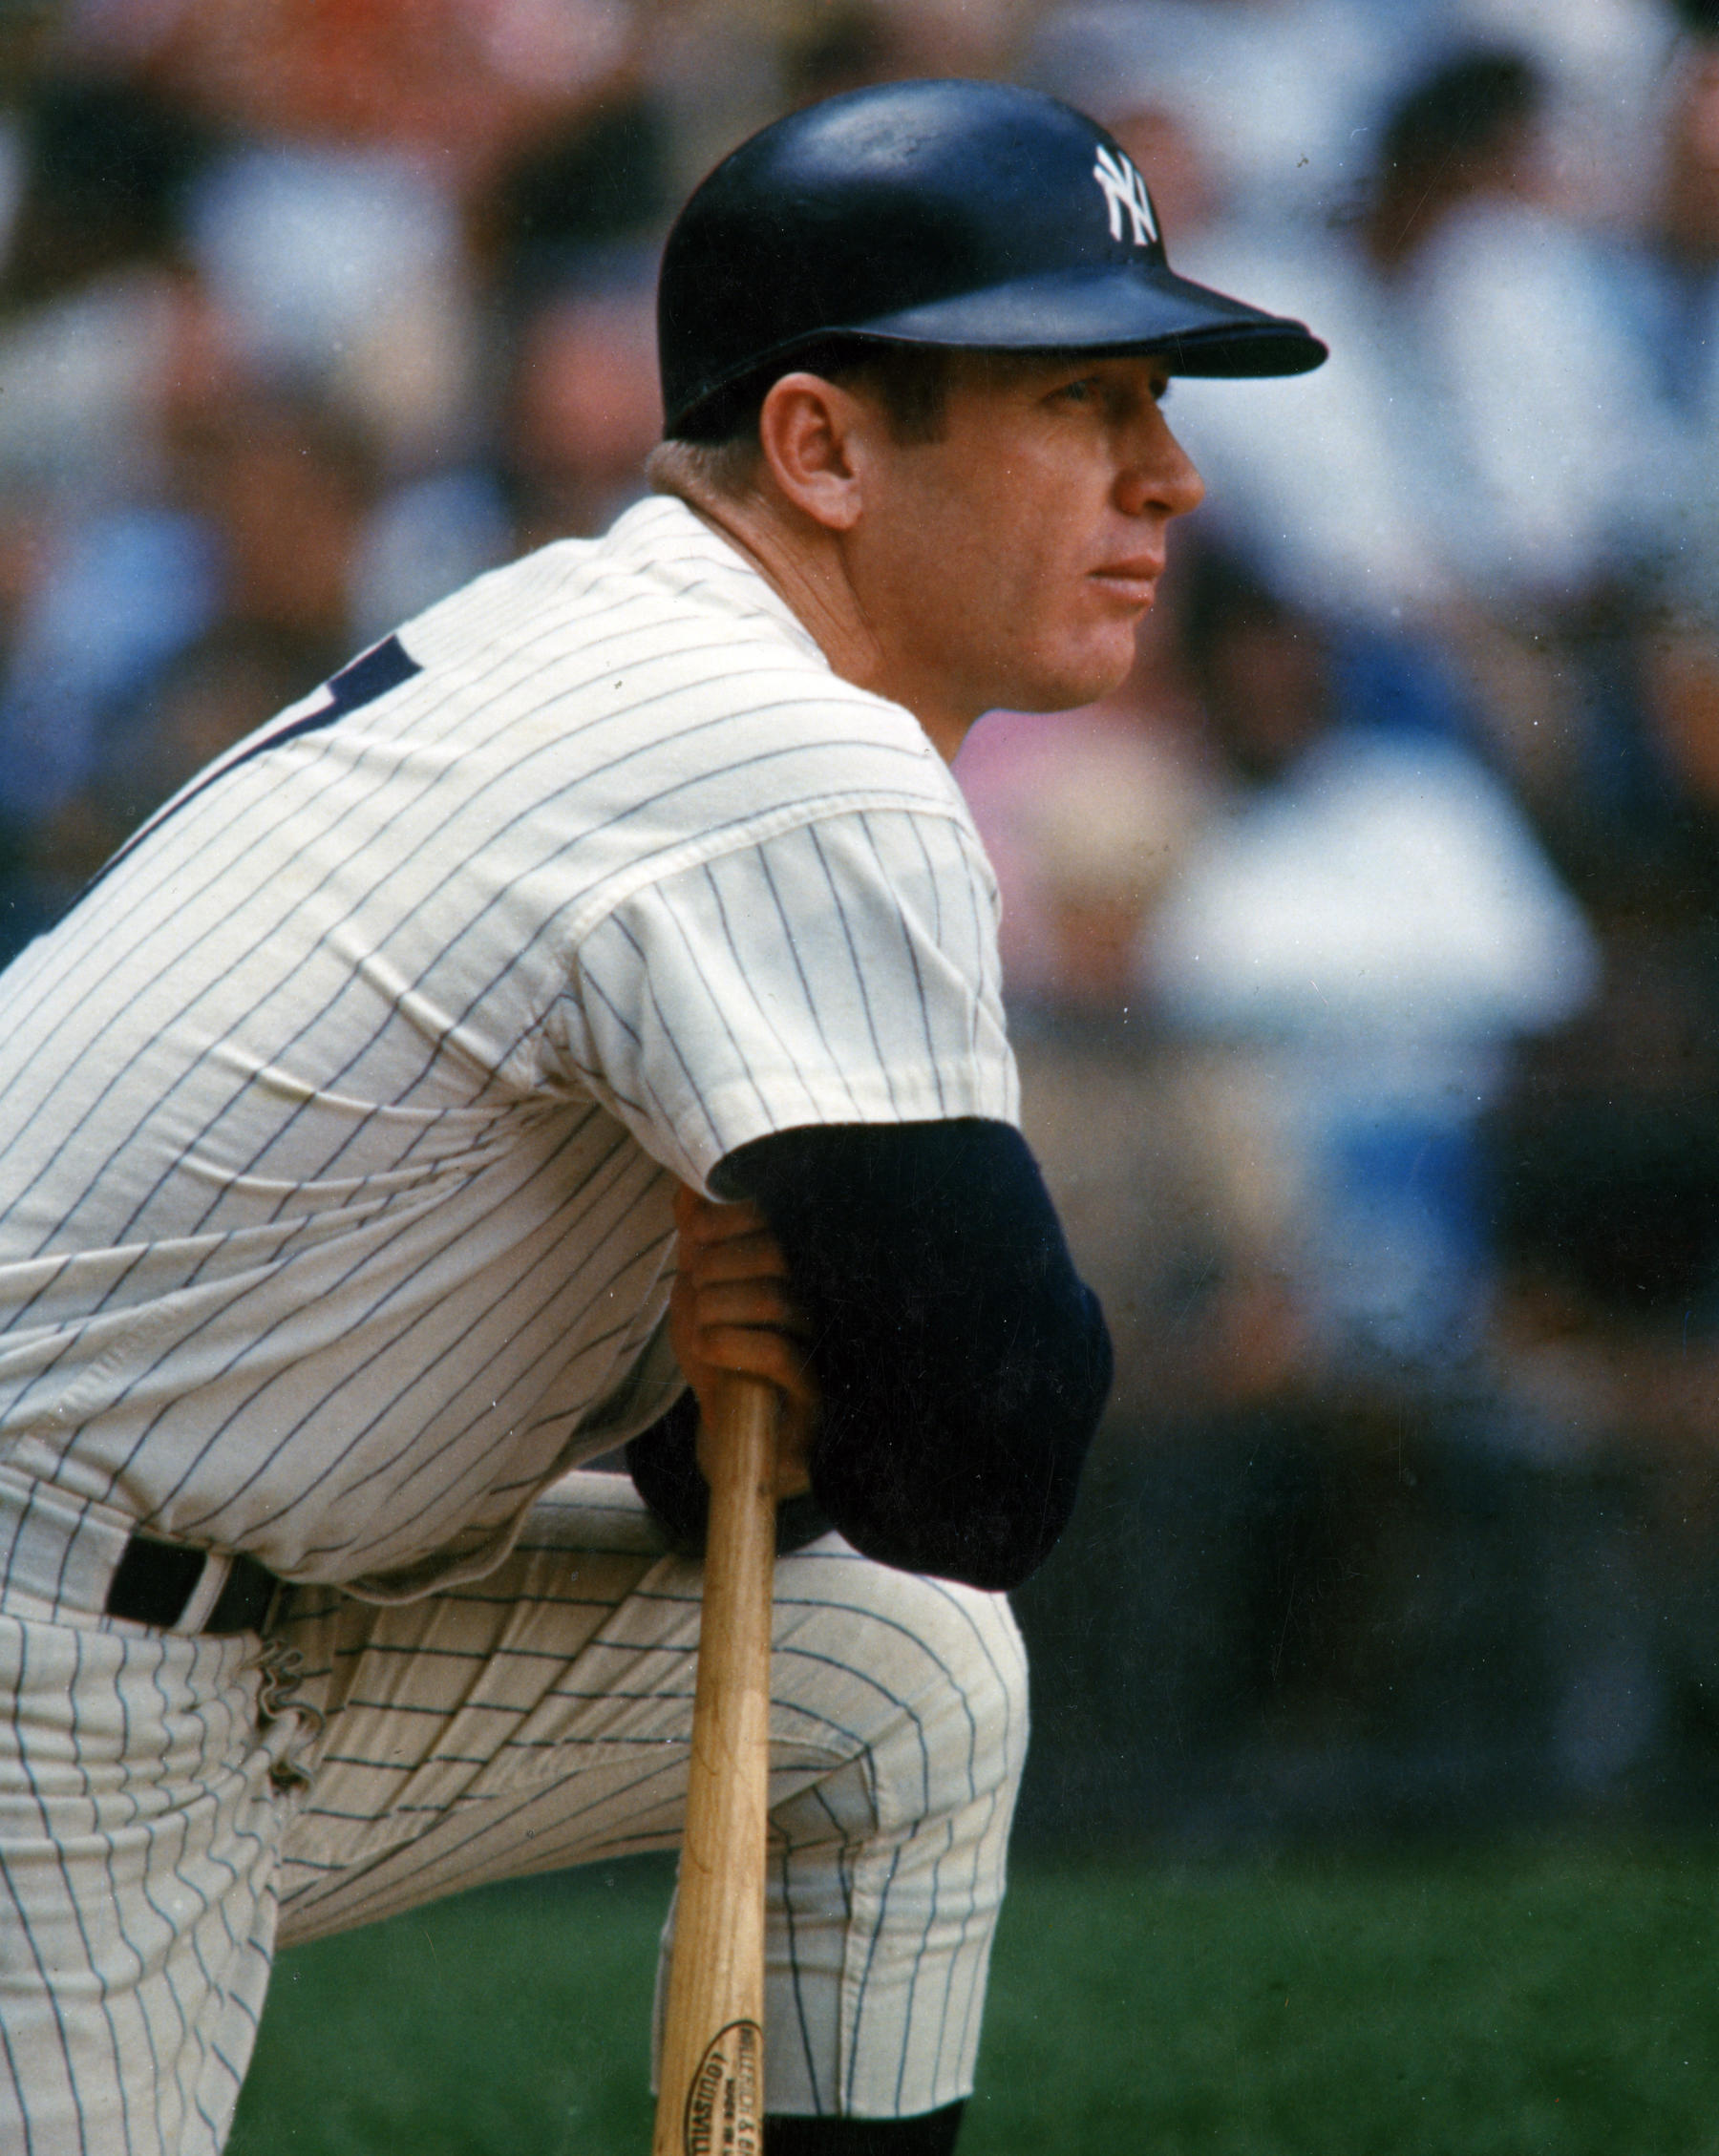 Mickey Mantle kneeling, taking in the scene. BL-7274.89 (National Baseball Hall of Fame Library)